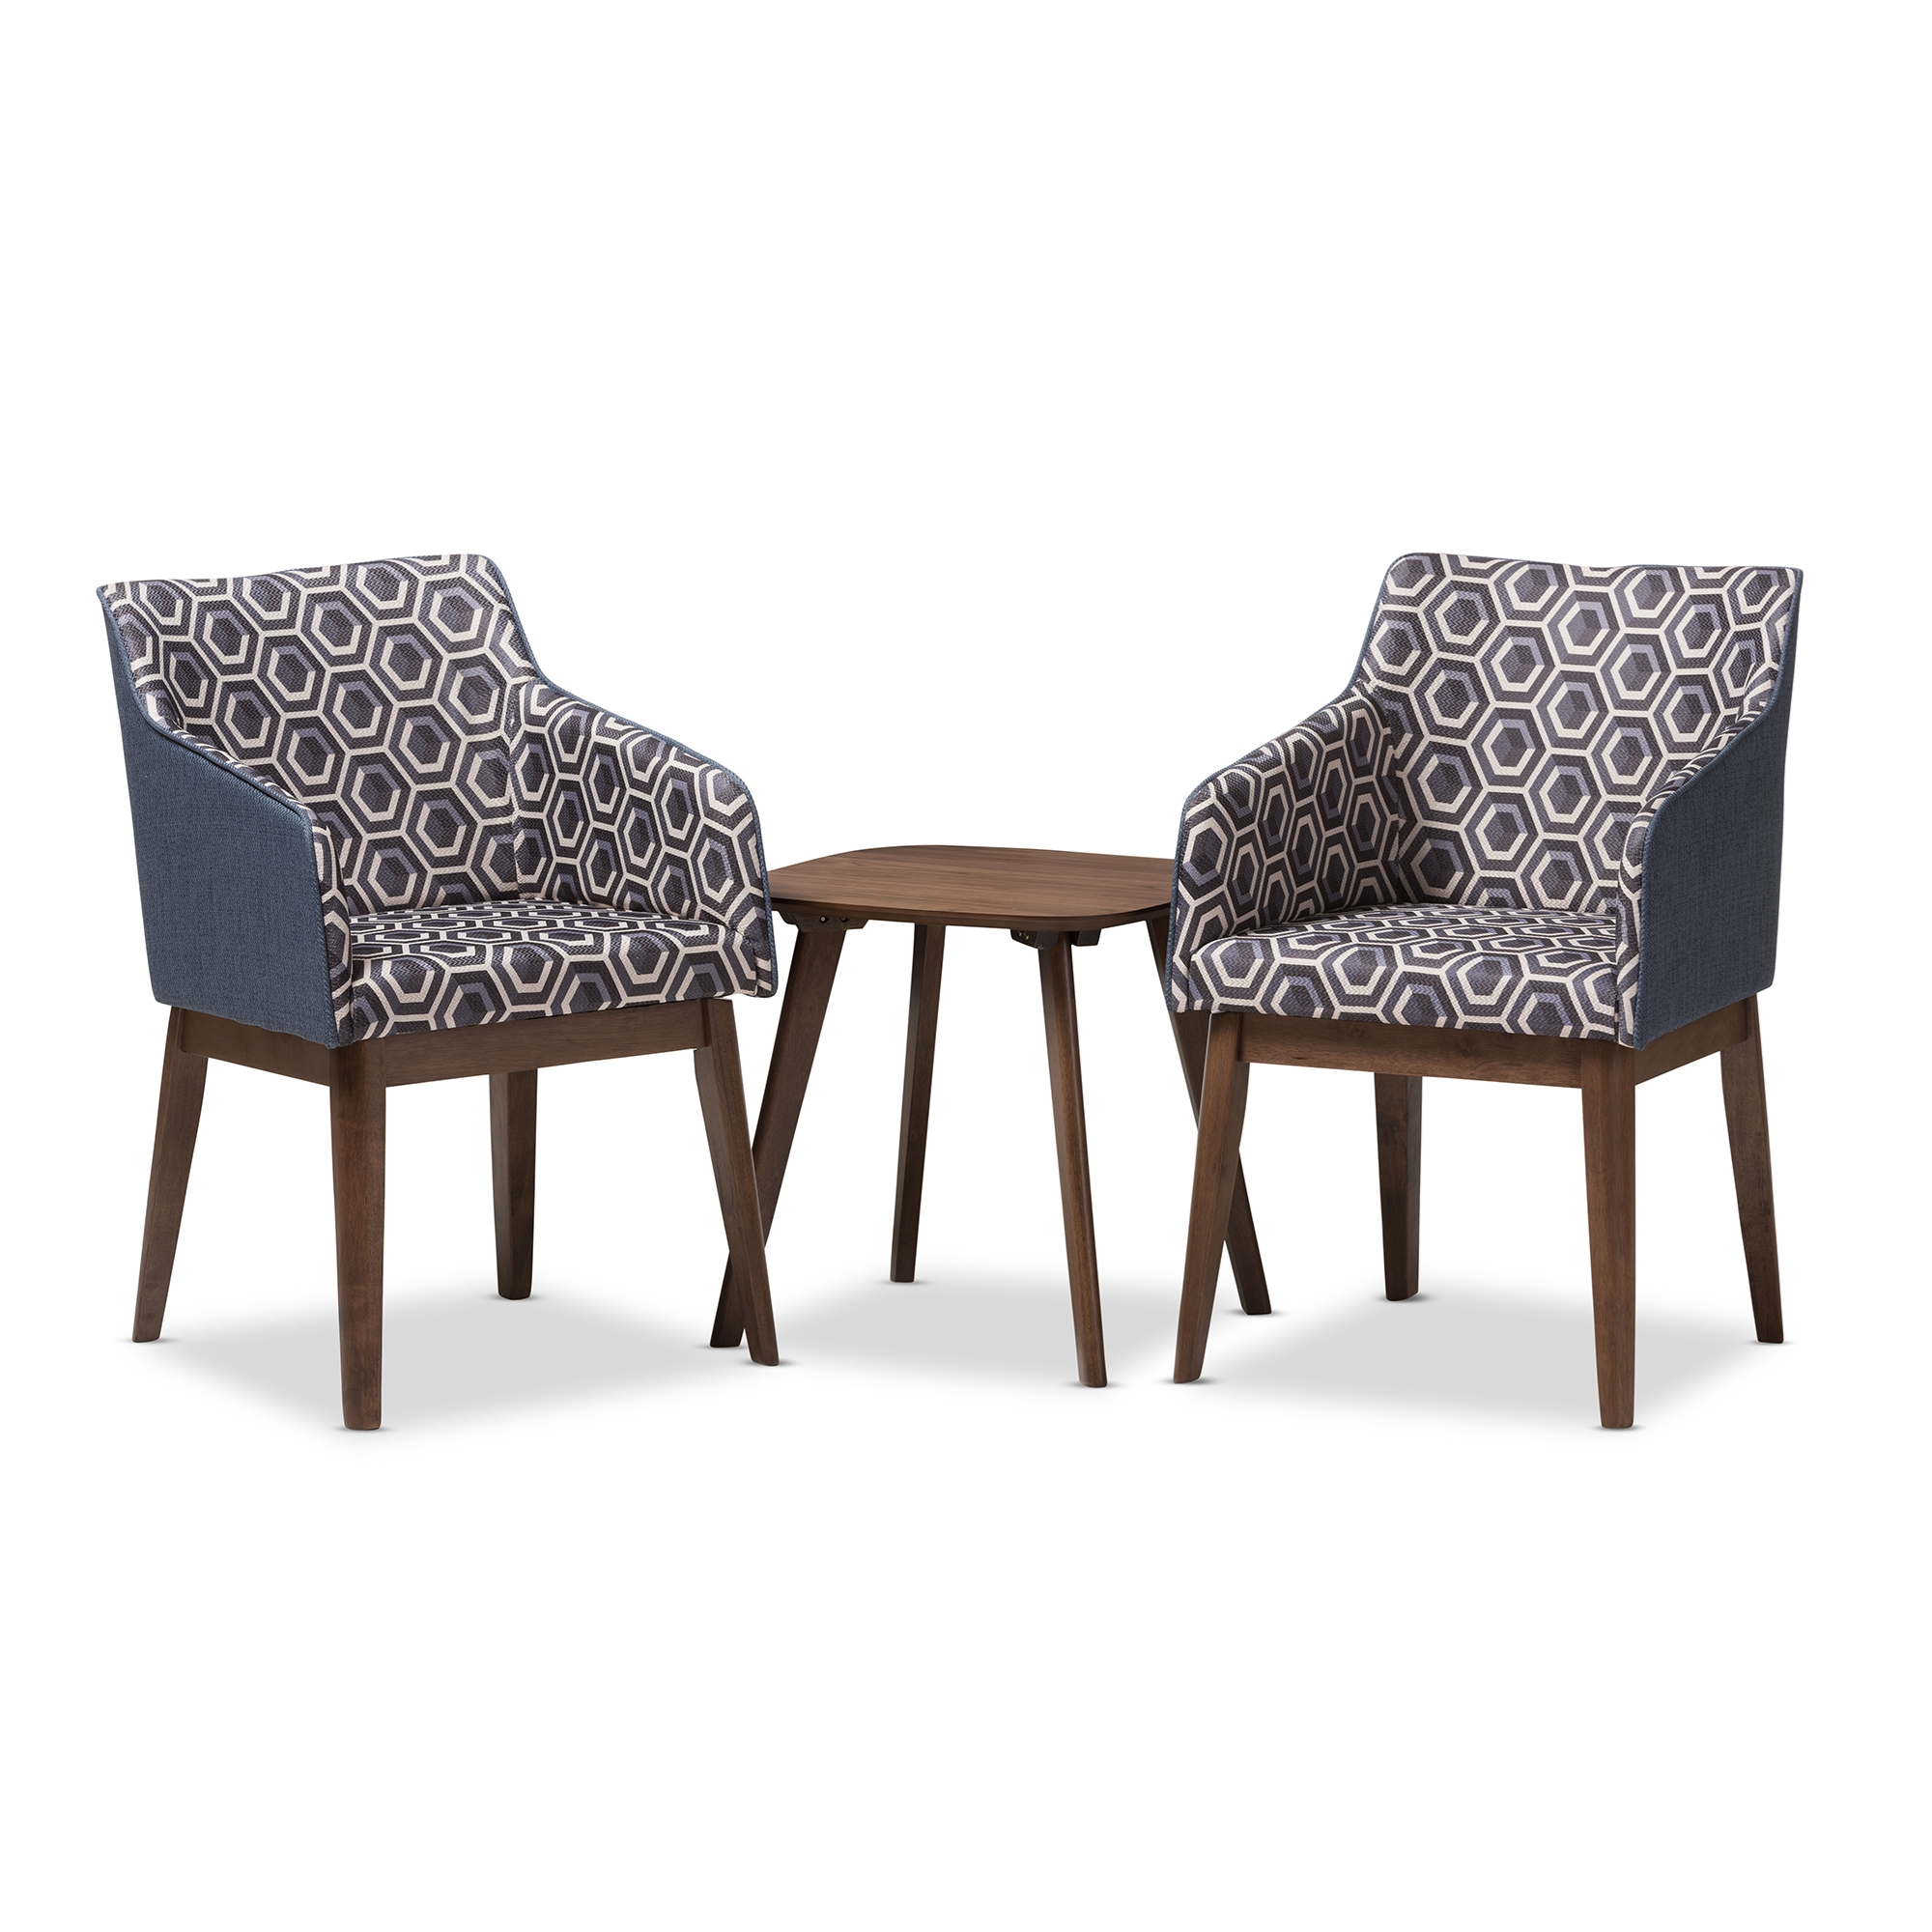 Baxton Studio Reece Mid-Century Modern 3-Piece Lounge Chair and Side Table Set  sc 1 st  Interior Express & Baxton Studio Reece Mid-Century Modern 3-Piece Lounge Chair and Side ...